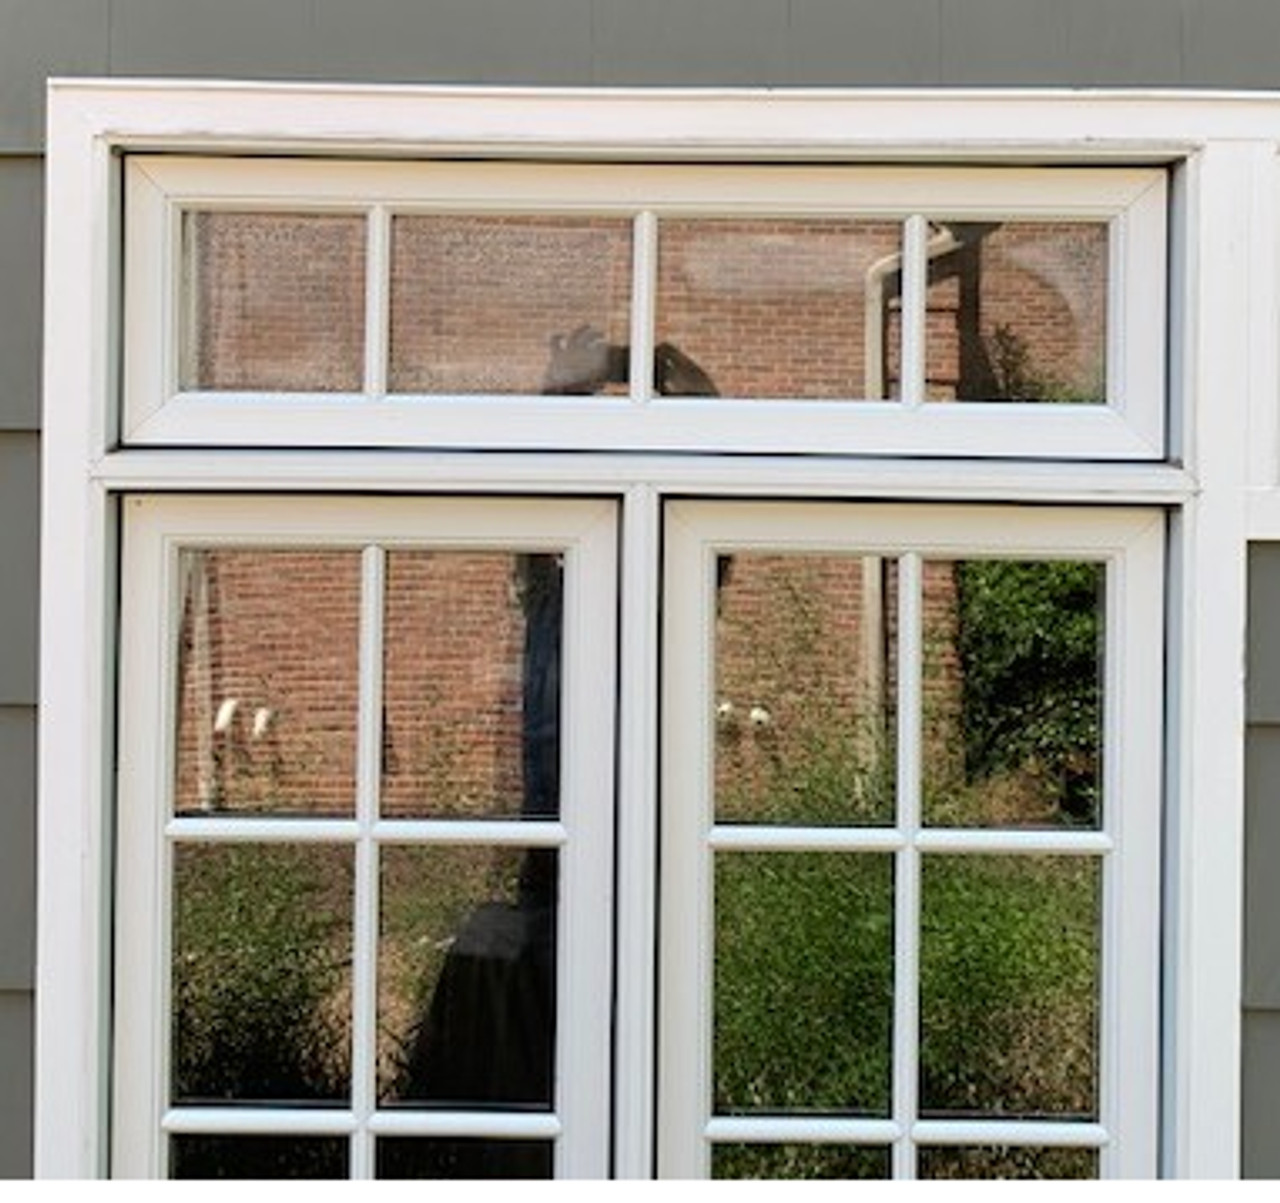 #3 Rauch job Lincoln custom size casement sash andte cl frame with 7/8 SDL bars 4w x 1h mill finish gias , whiad exterior, visible = 35 7/8w x 7h and actual sash = 40 1/8 w x 11 1/8h: grilles to line up over double 1836-2